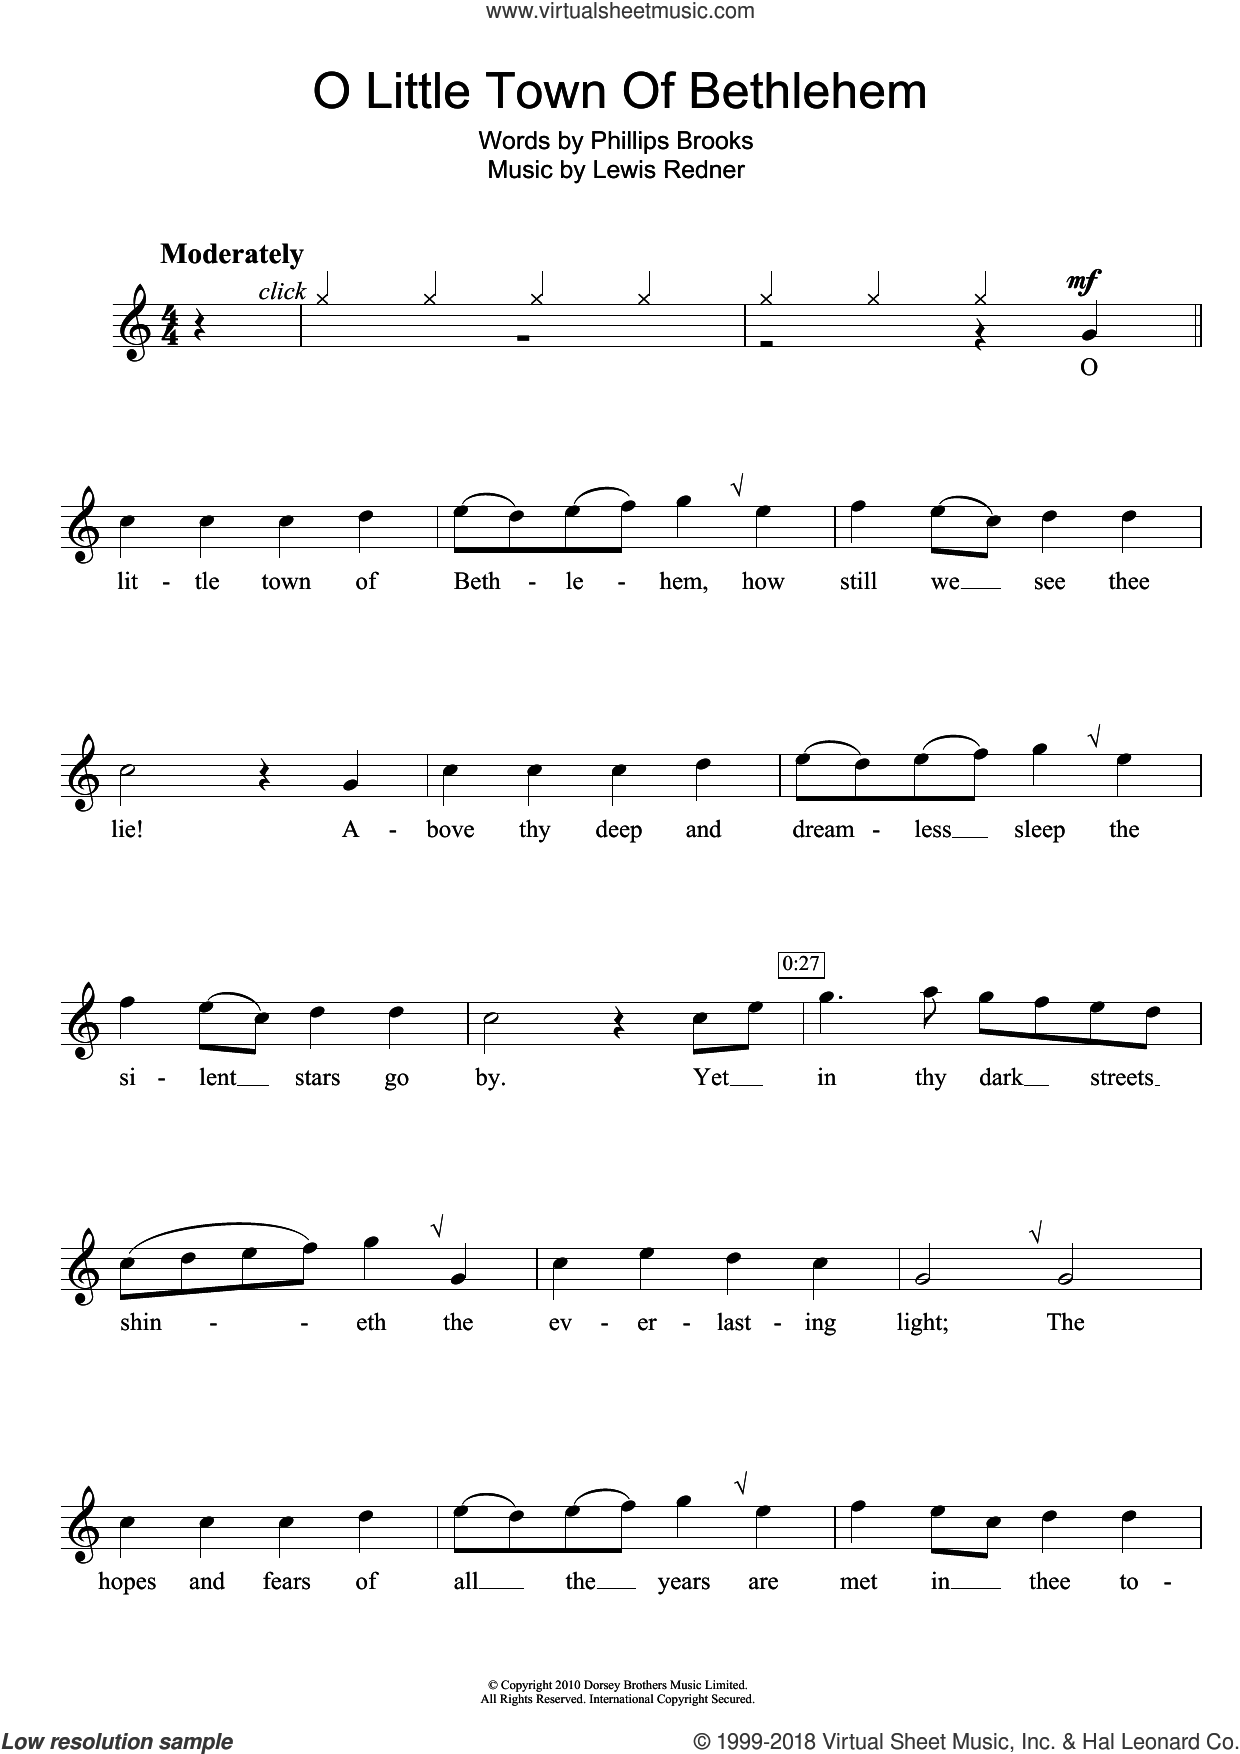 O Little Town Of Bethlehem sheet music for flute solo by Lewis Redner, Miscellaneous and Phillips Brooks, intermediate skill level